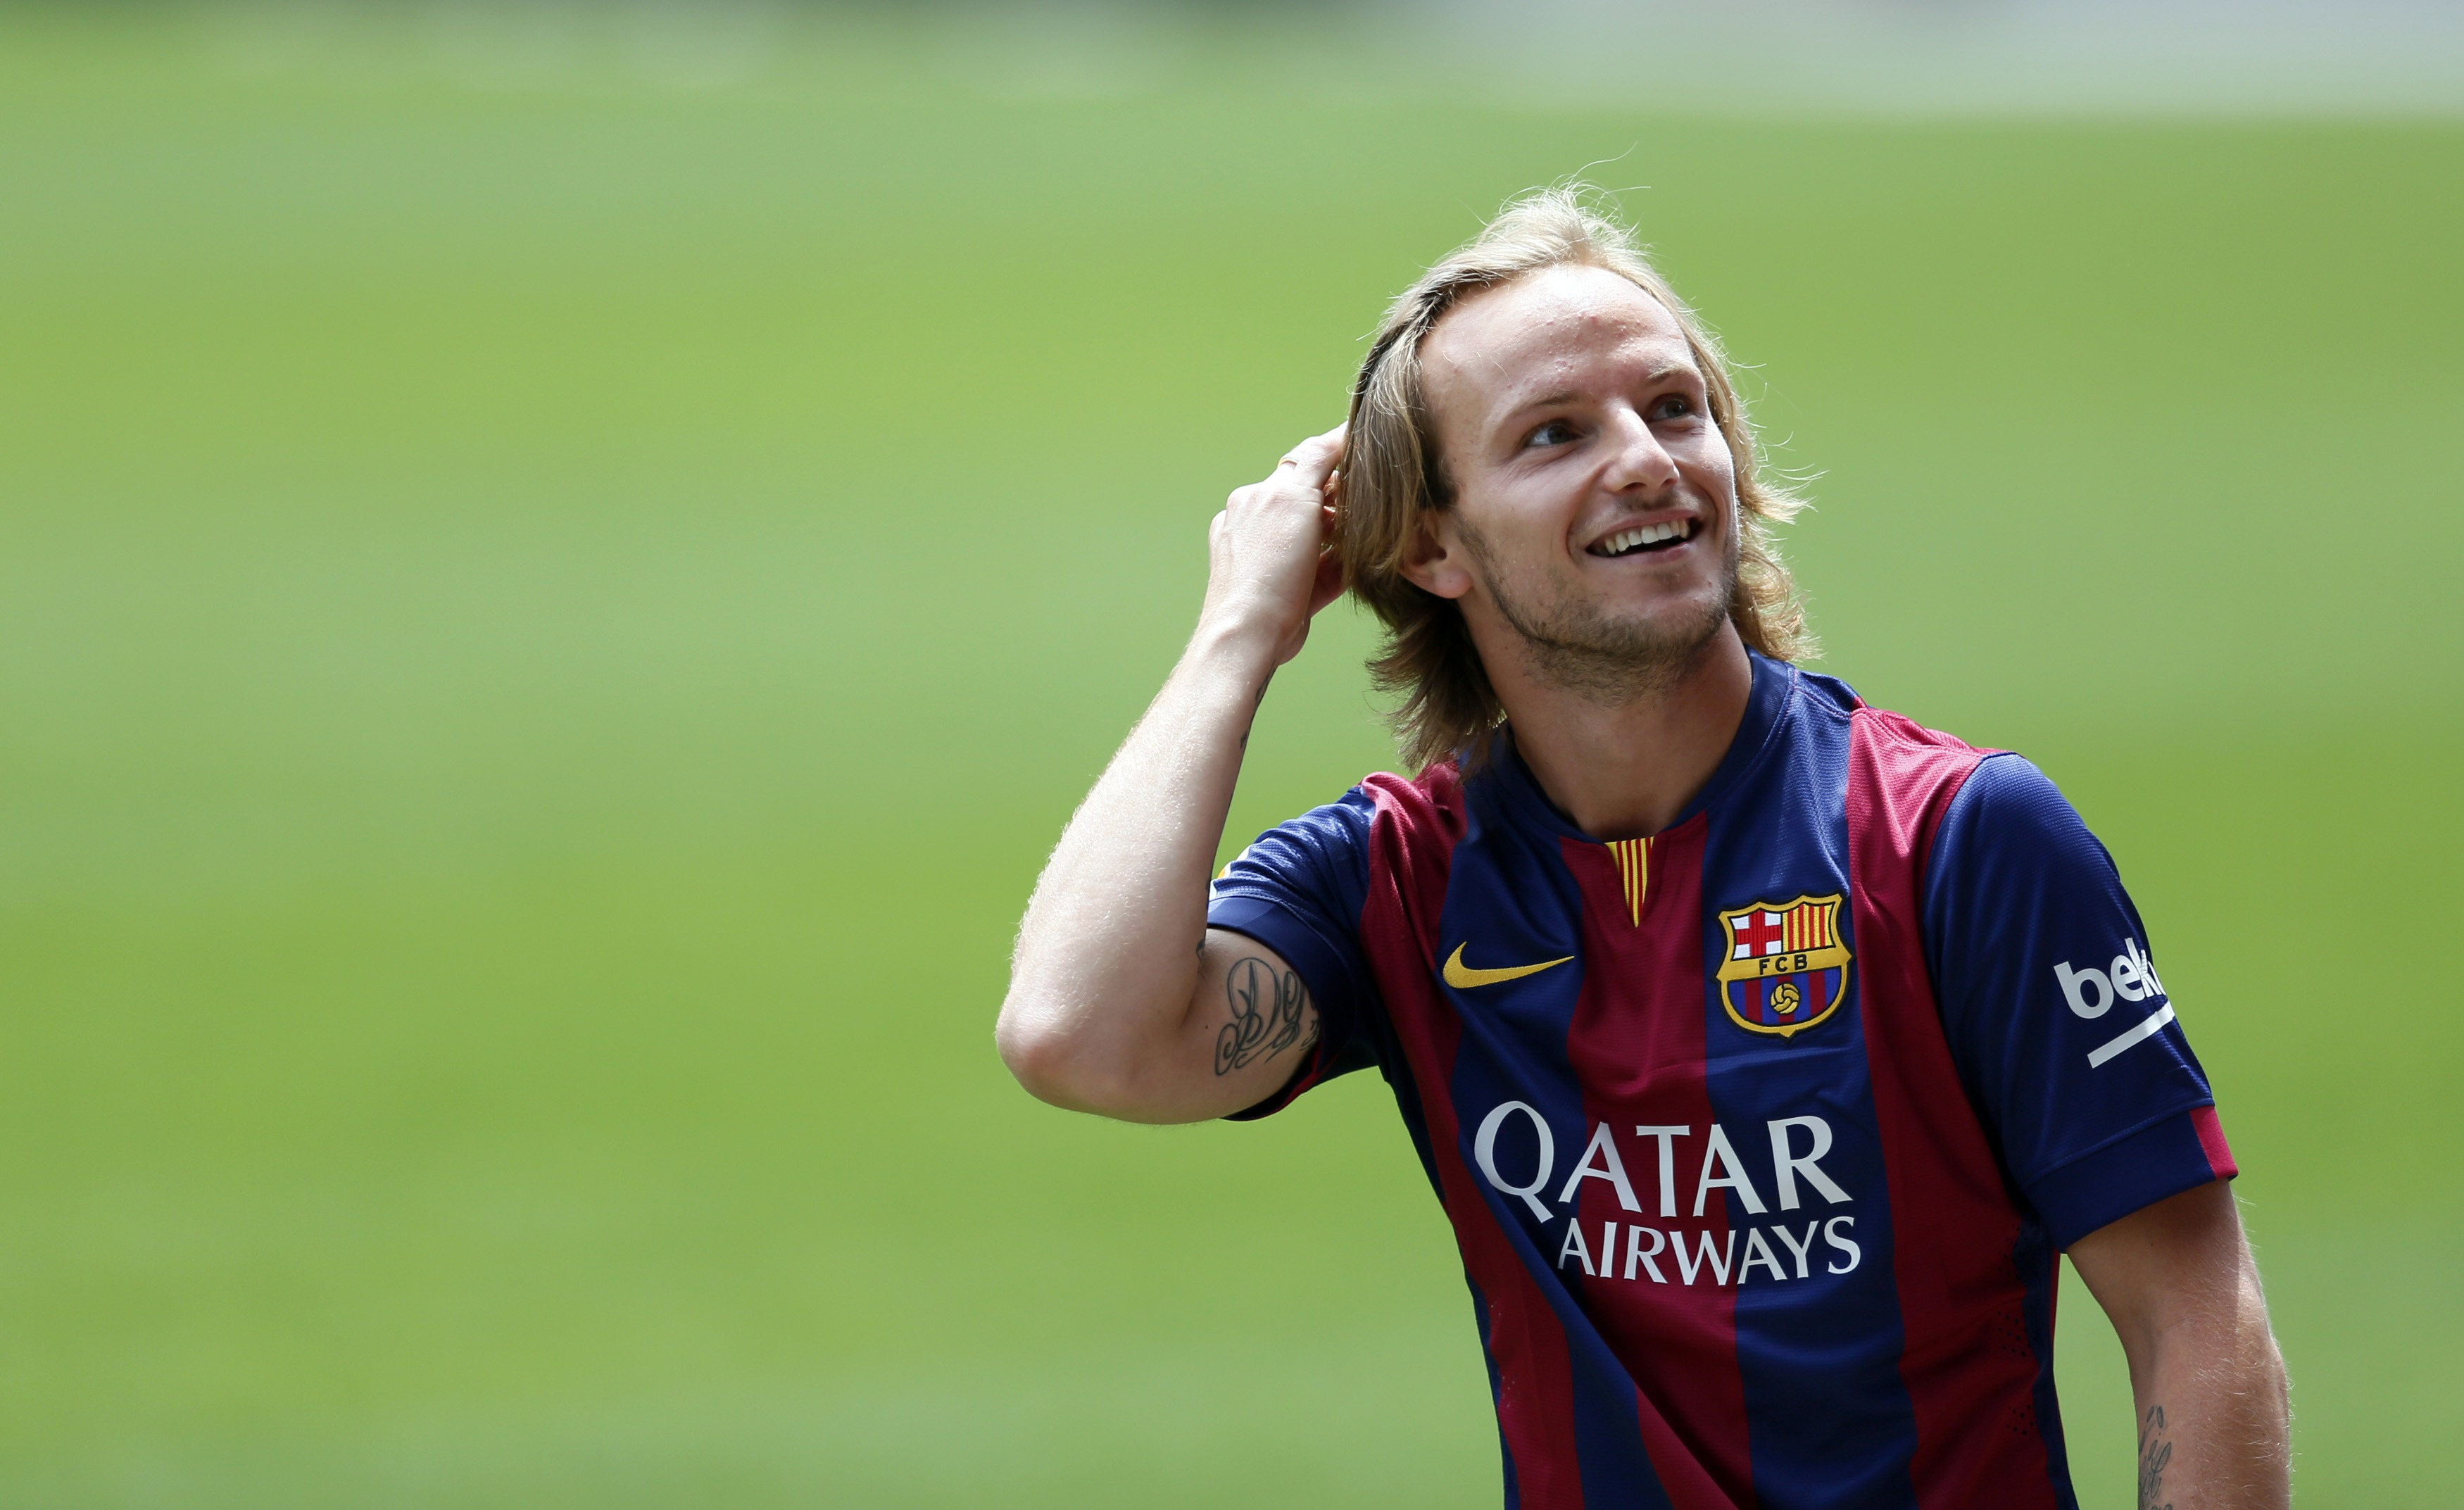 Ivan Rakitic Wallpapers s Backgrounds